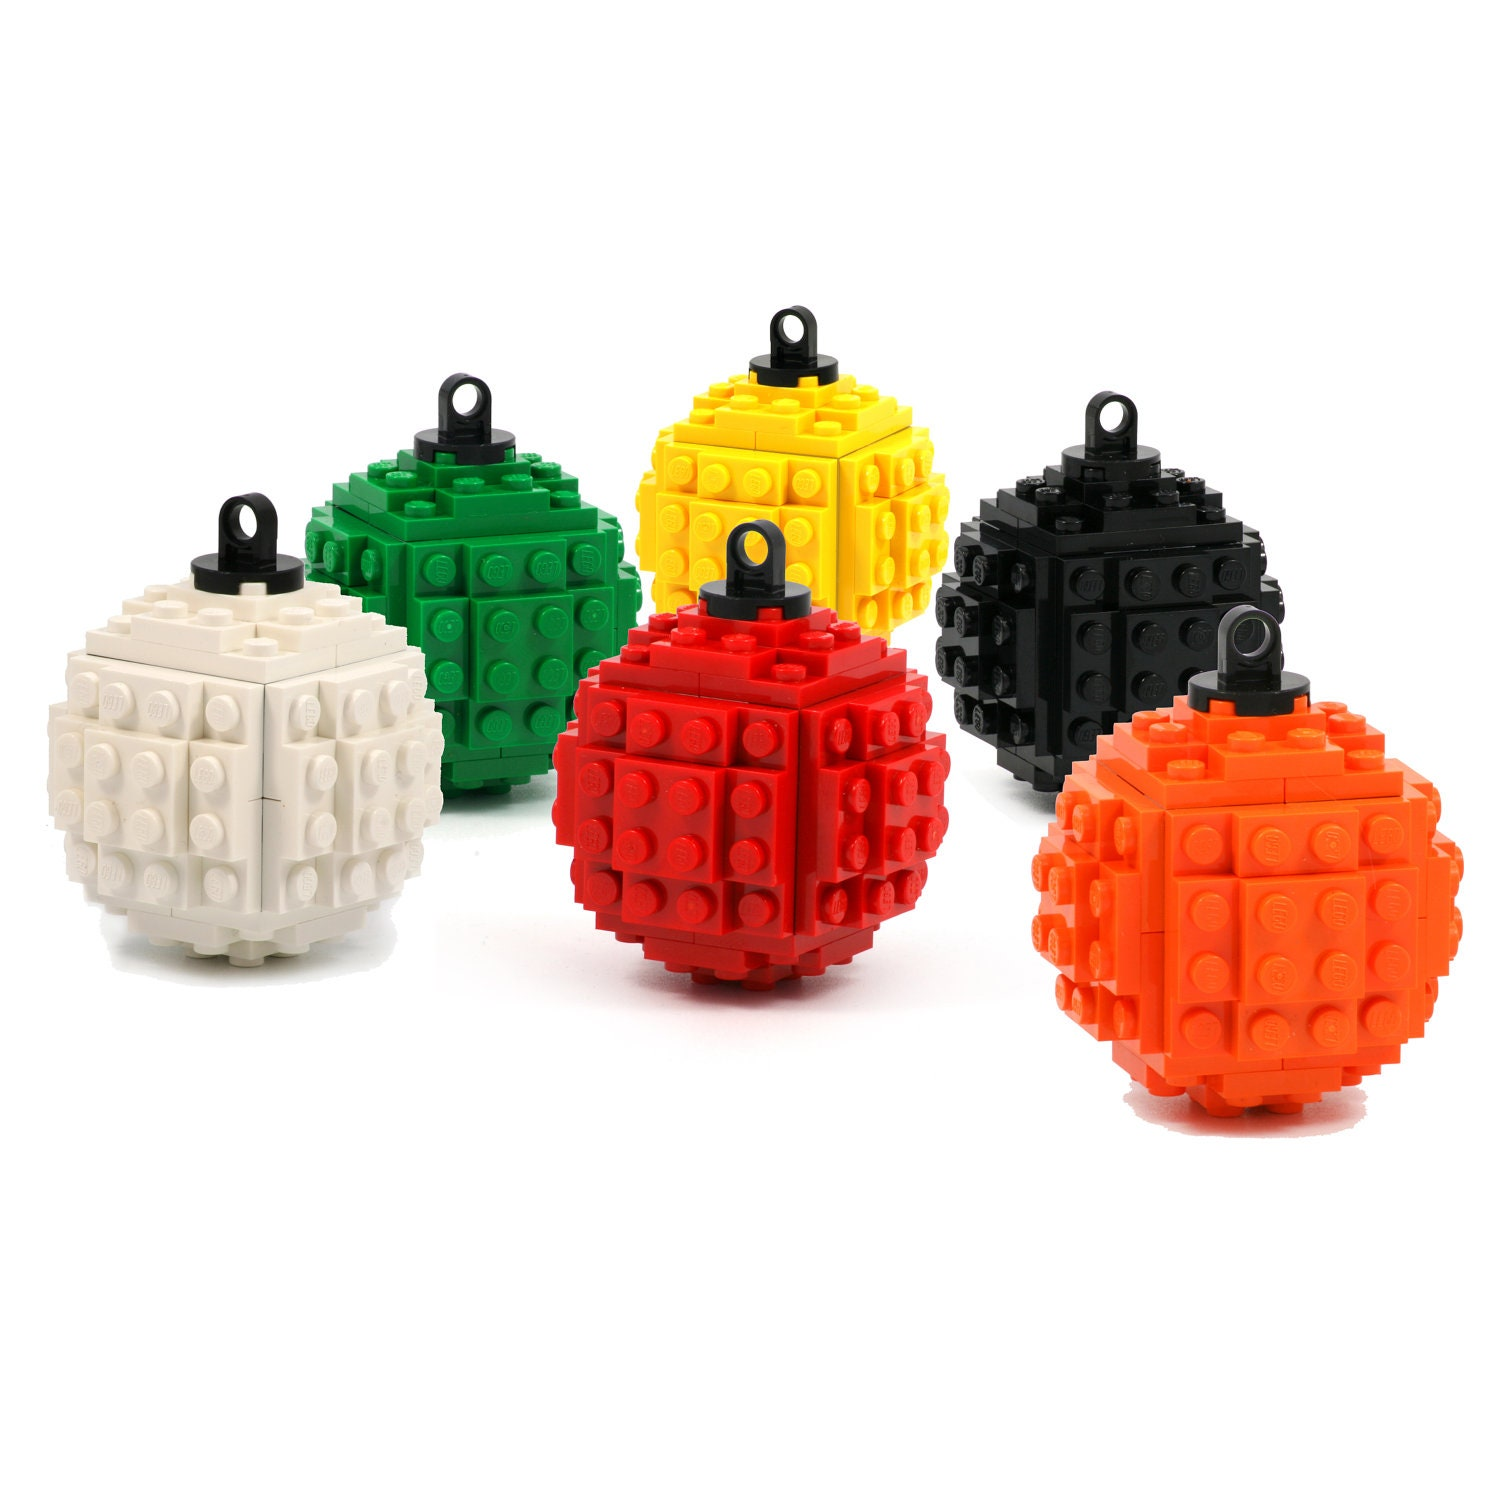 Christmas Tree Ball Ornament Made With LEGO Bricks A Modern